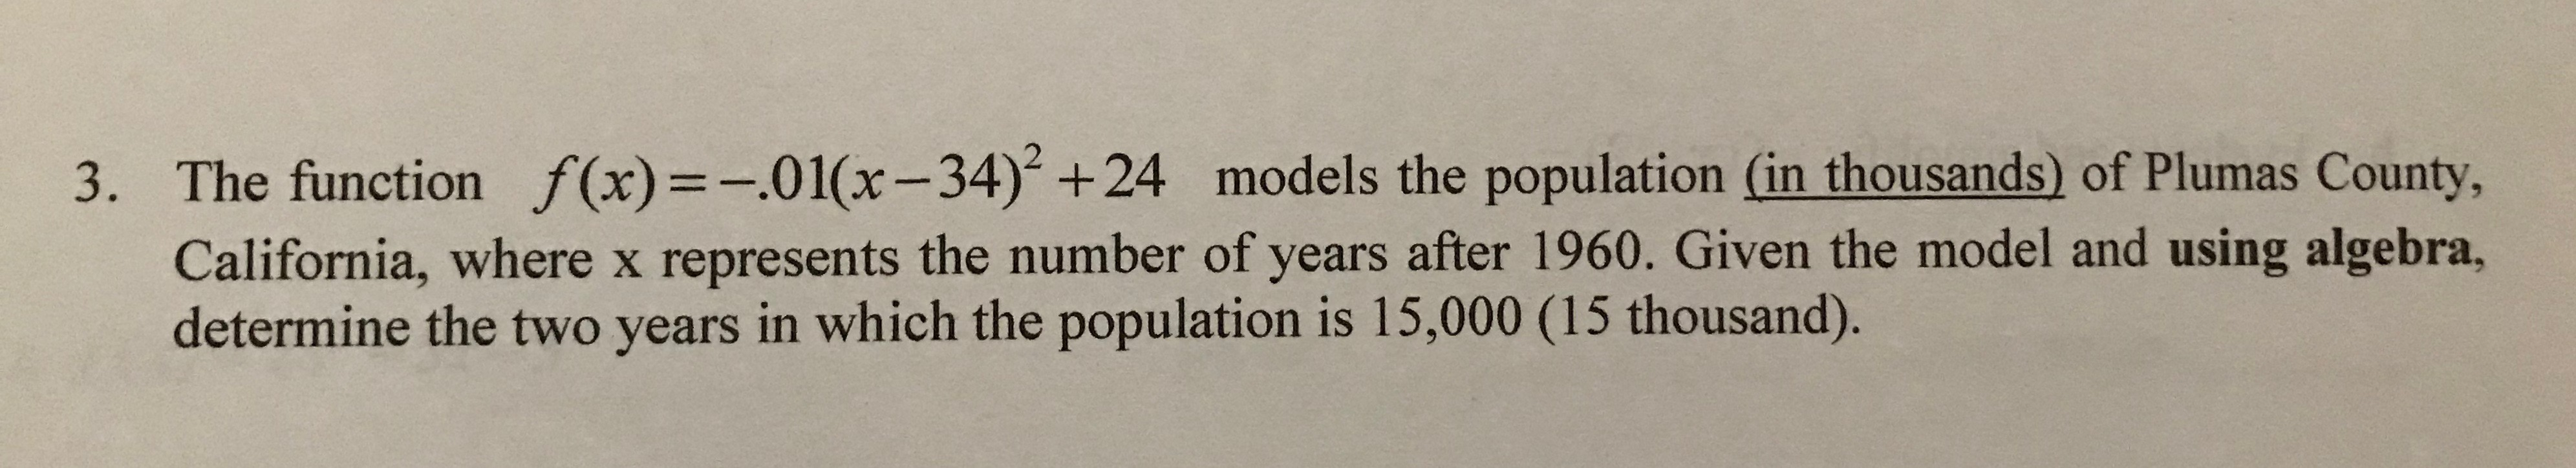 The function f(x)=-.01(x-34) +24 models the population (in thousands) of Plumas County, 3. California, where x represents the number of years after 1960. Given the model and using algebra, determine the two years in which the population is 15,000 (15 thousand).